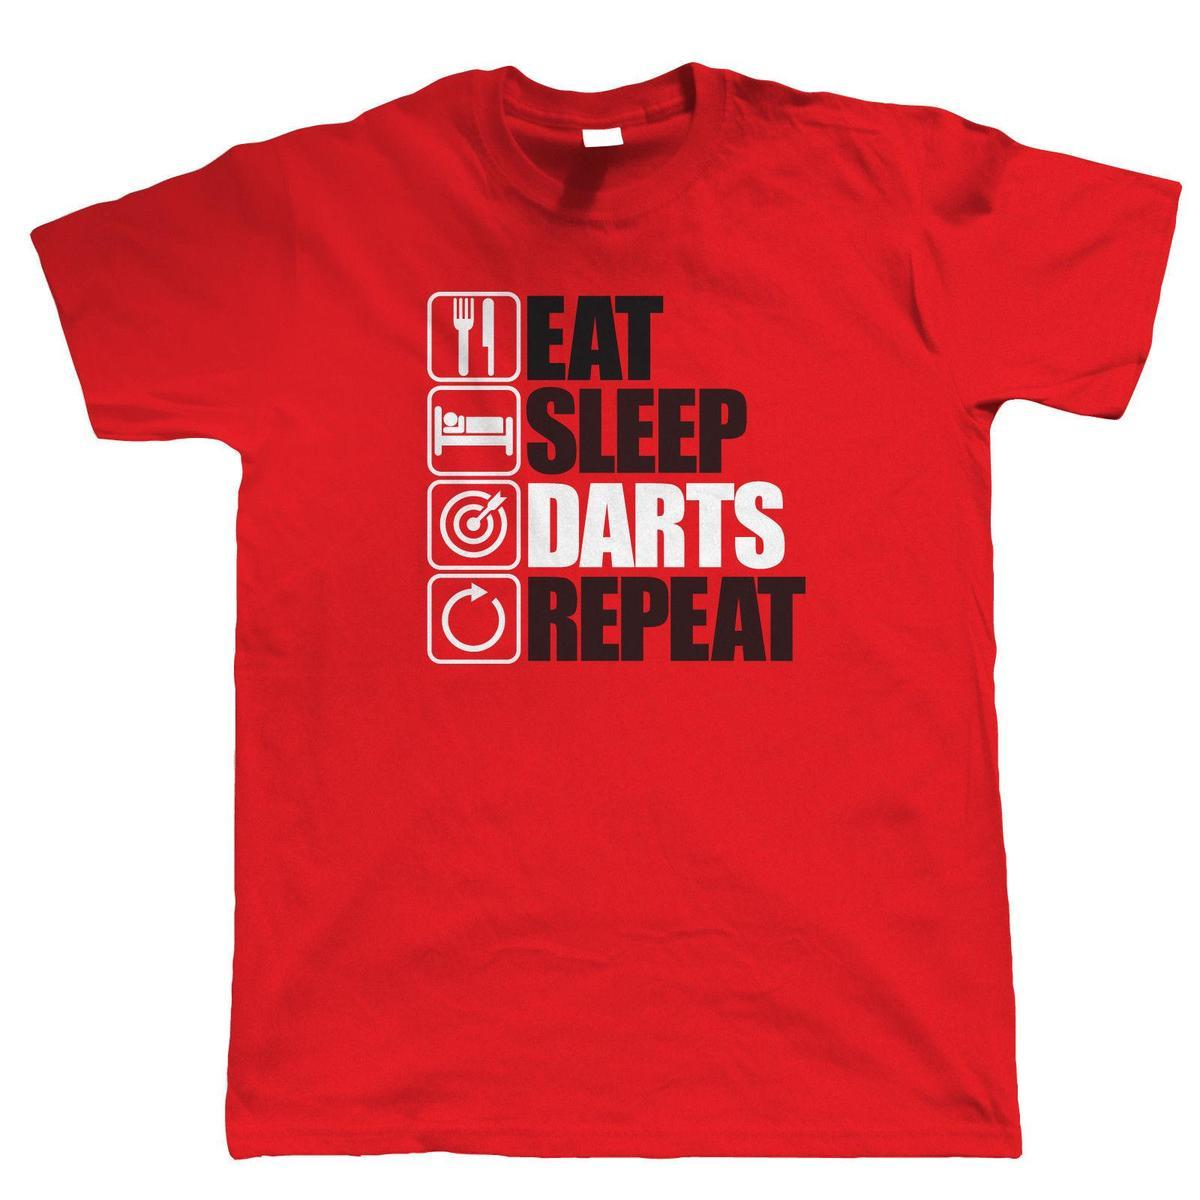 Eat Sleep Darts Repeat, Mens Funny Games T Shirt, Gift Dad